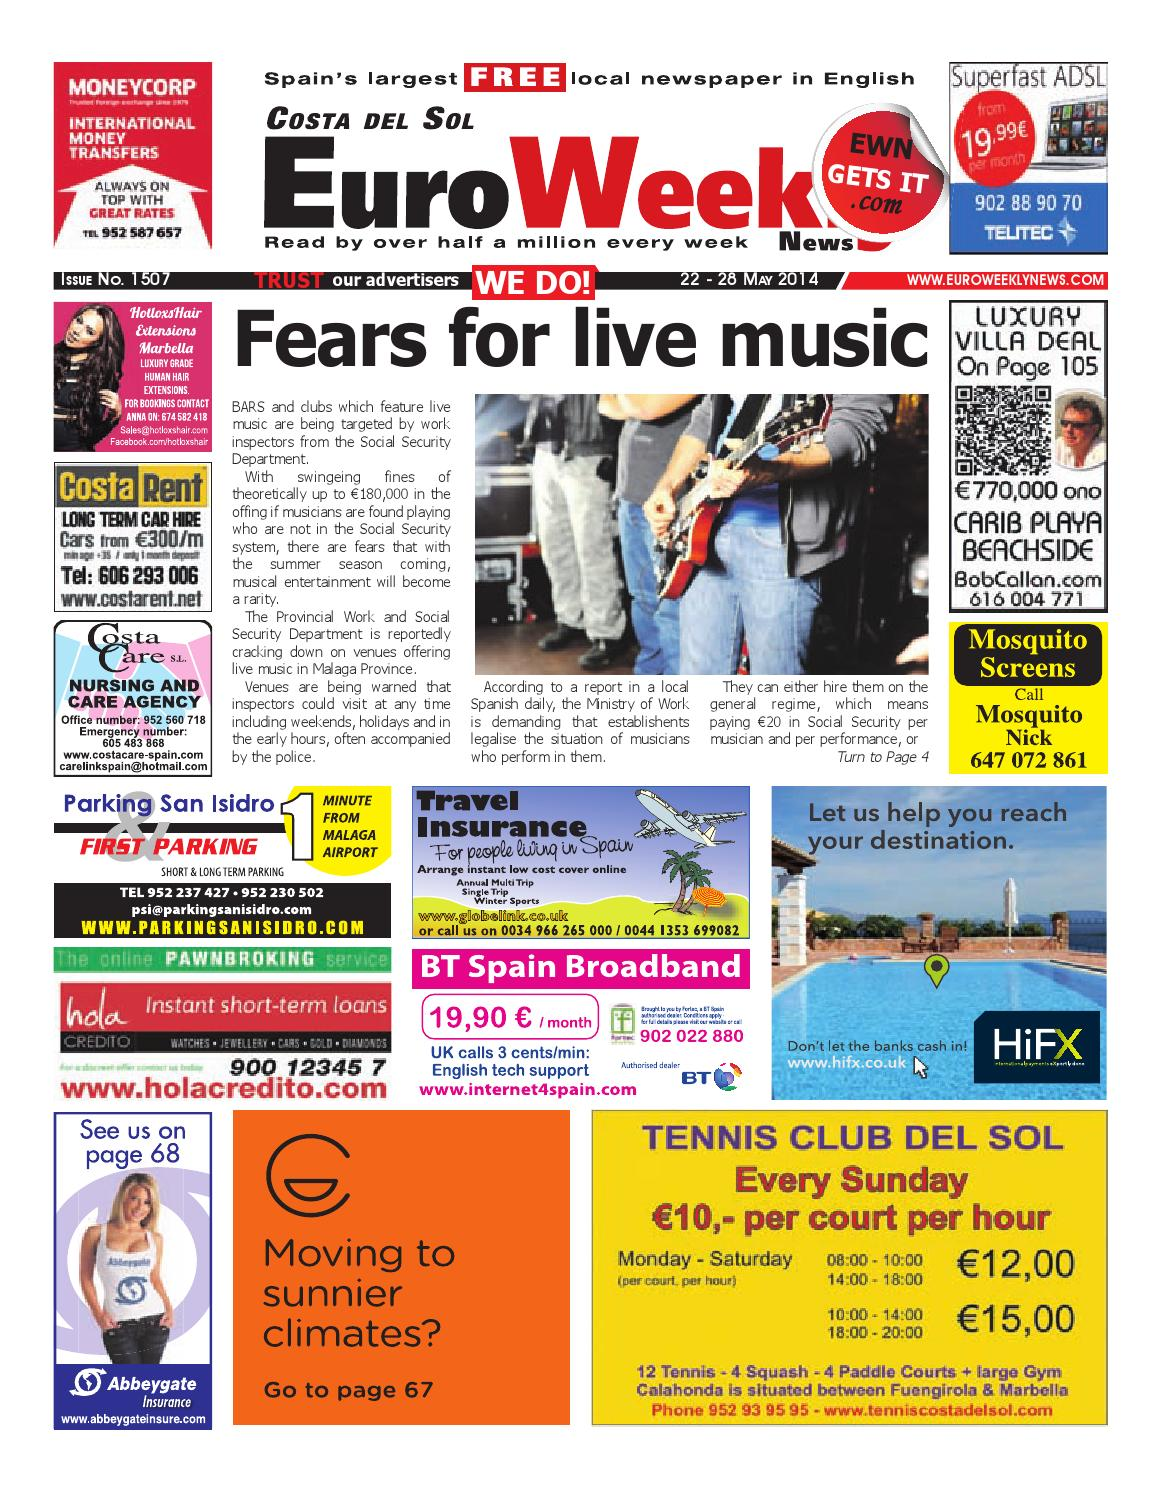 Euro Weekly News - Costa del Sol 22 - 28 May 2014 Issue 1507 by Euro Weekly  News Media S.A. - issuu